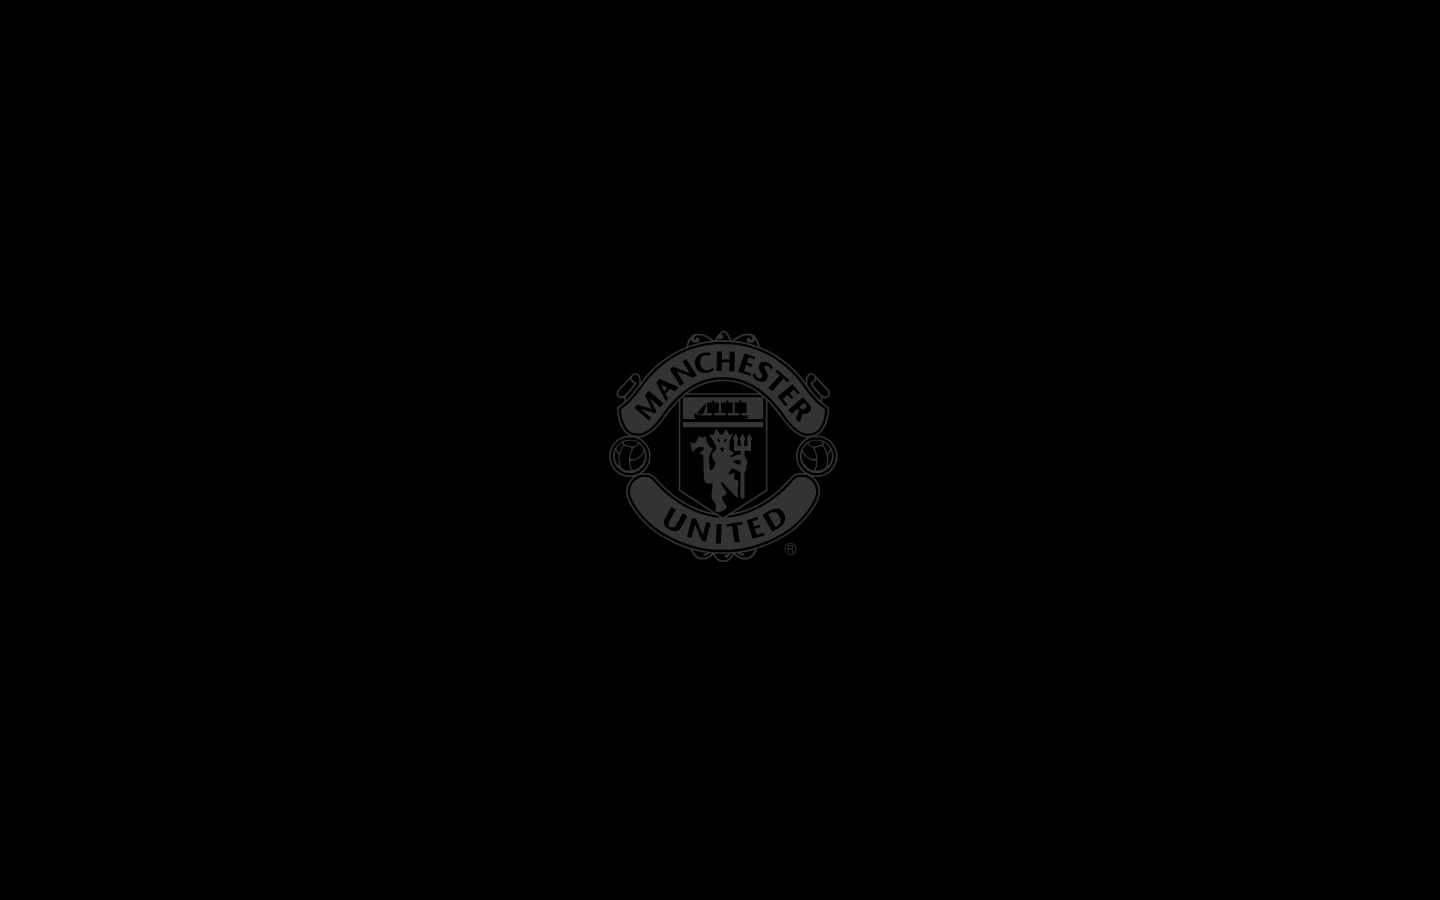 Wallpapers logo manchester united terbaru 2016 wallpaper cave man u logo wallpapers wallpaper cave voltagebd Image collections